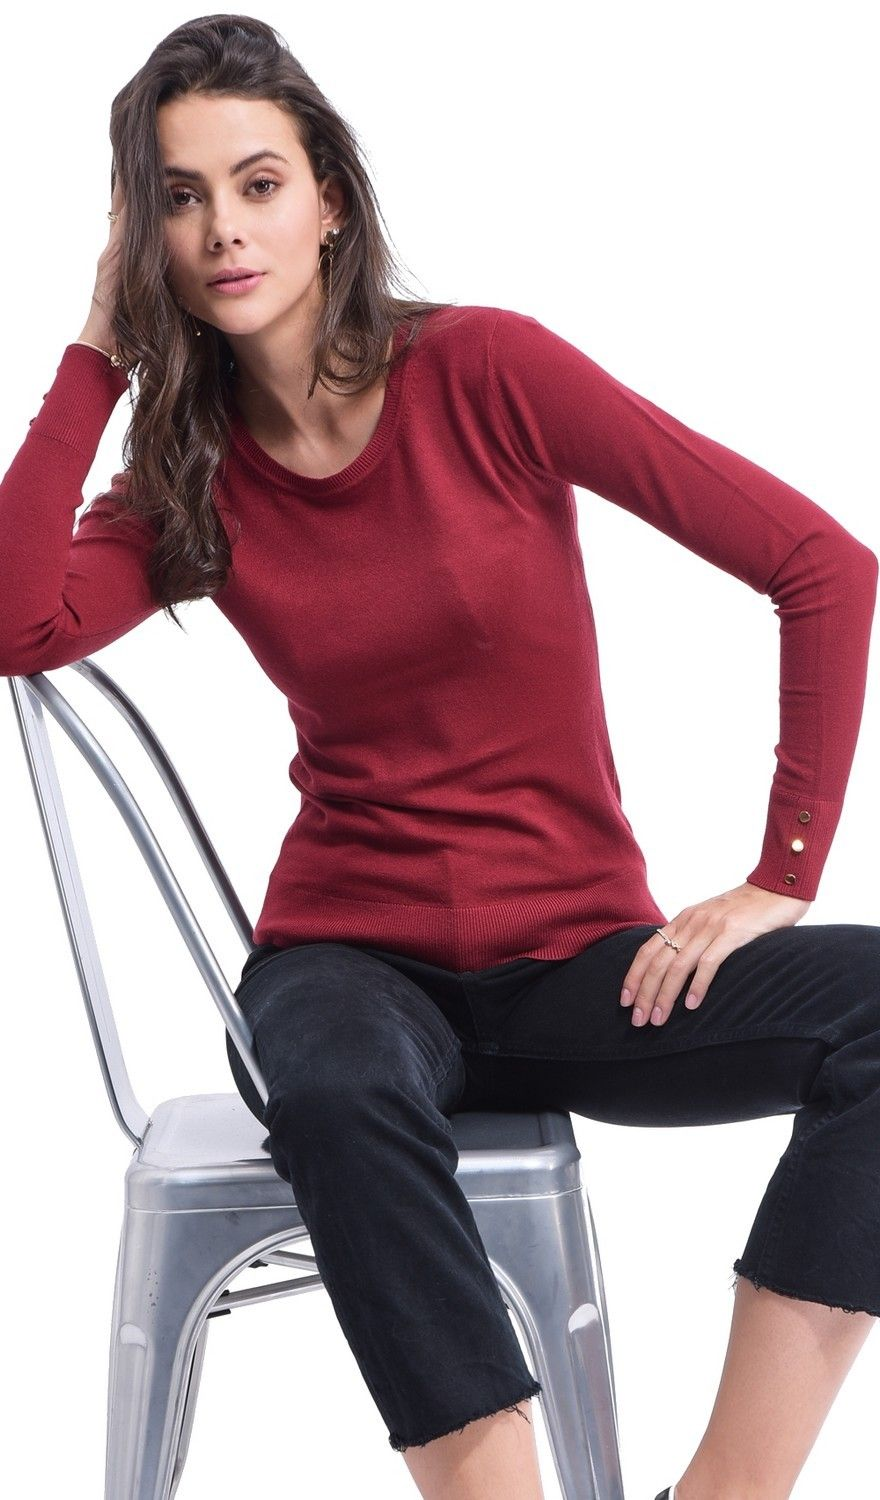 Assuili Round Neck Sweater with Buttoned Sleeves in Maroon